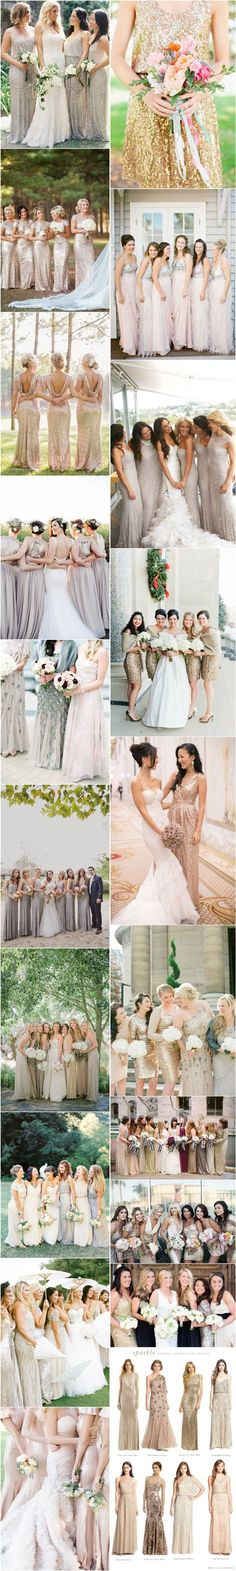 2015 Wedding Trends – Sequined and Metallic Bridesmaid Dresses | http://www.deerpearlflowers.com/2015-wedding-trends-sequined-metallic-bridesmaid-dresses/ #bridesmaiddresses